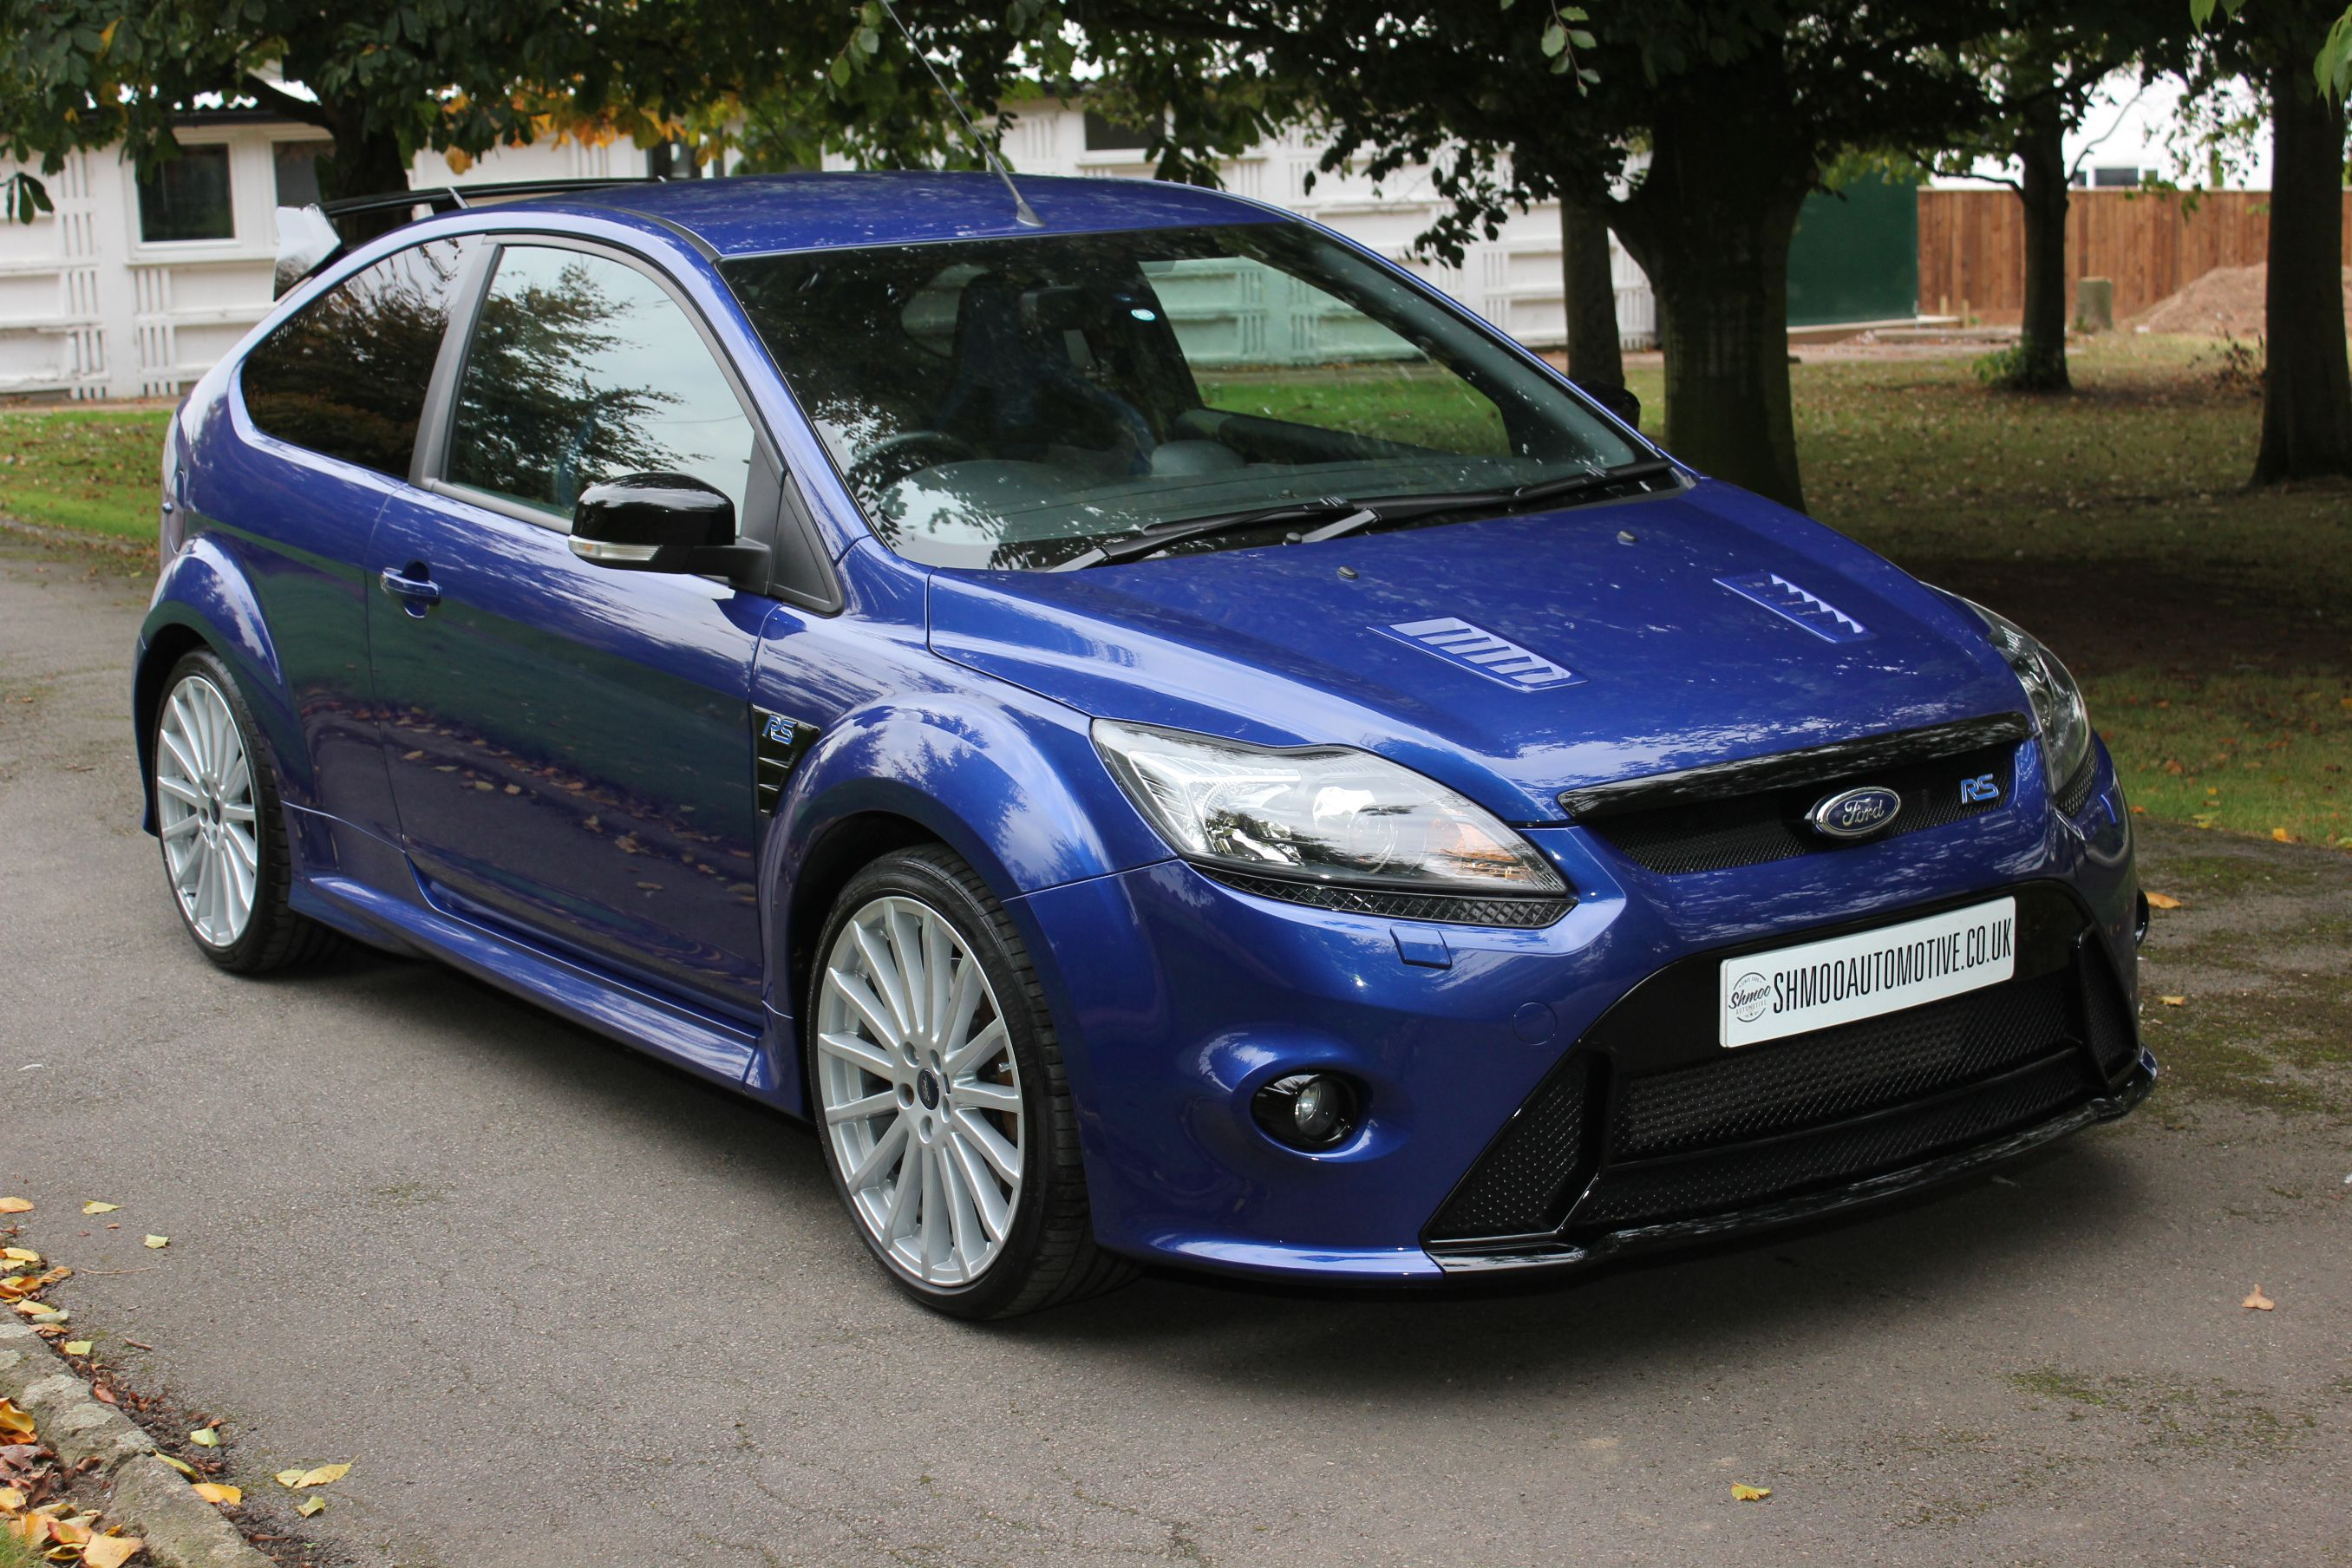 ford focus rs mk2 stunning 1 owner car with 15 000 miles. Black Bedroom Furniture Sets. Home Design Ideas